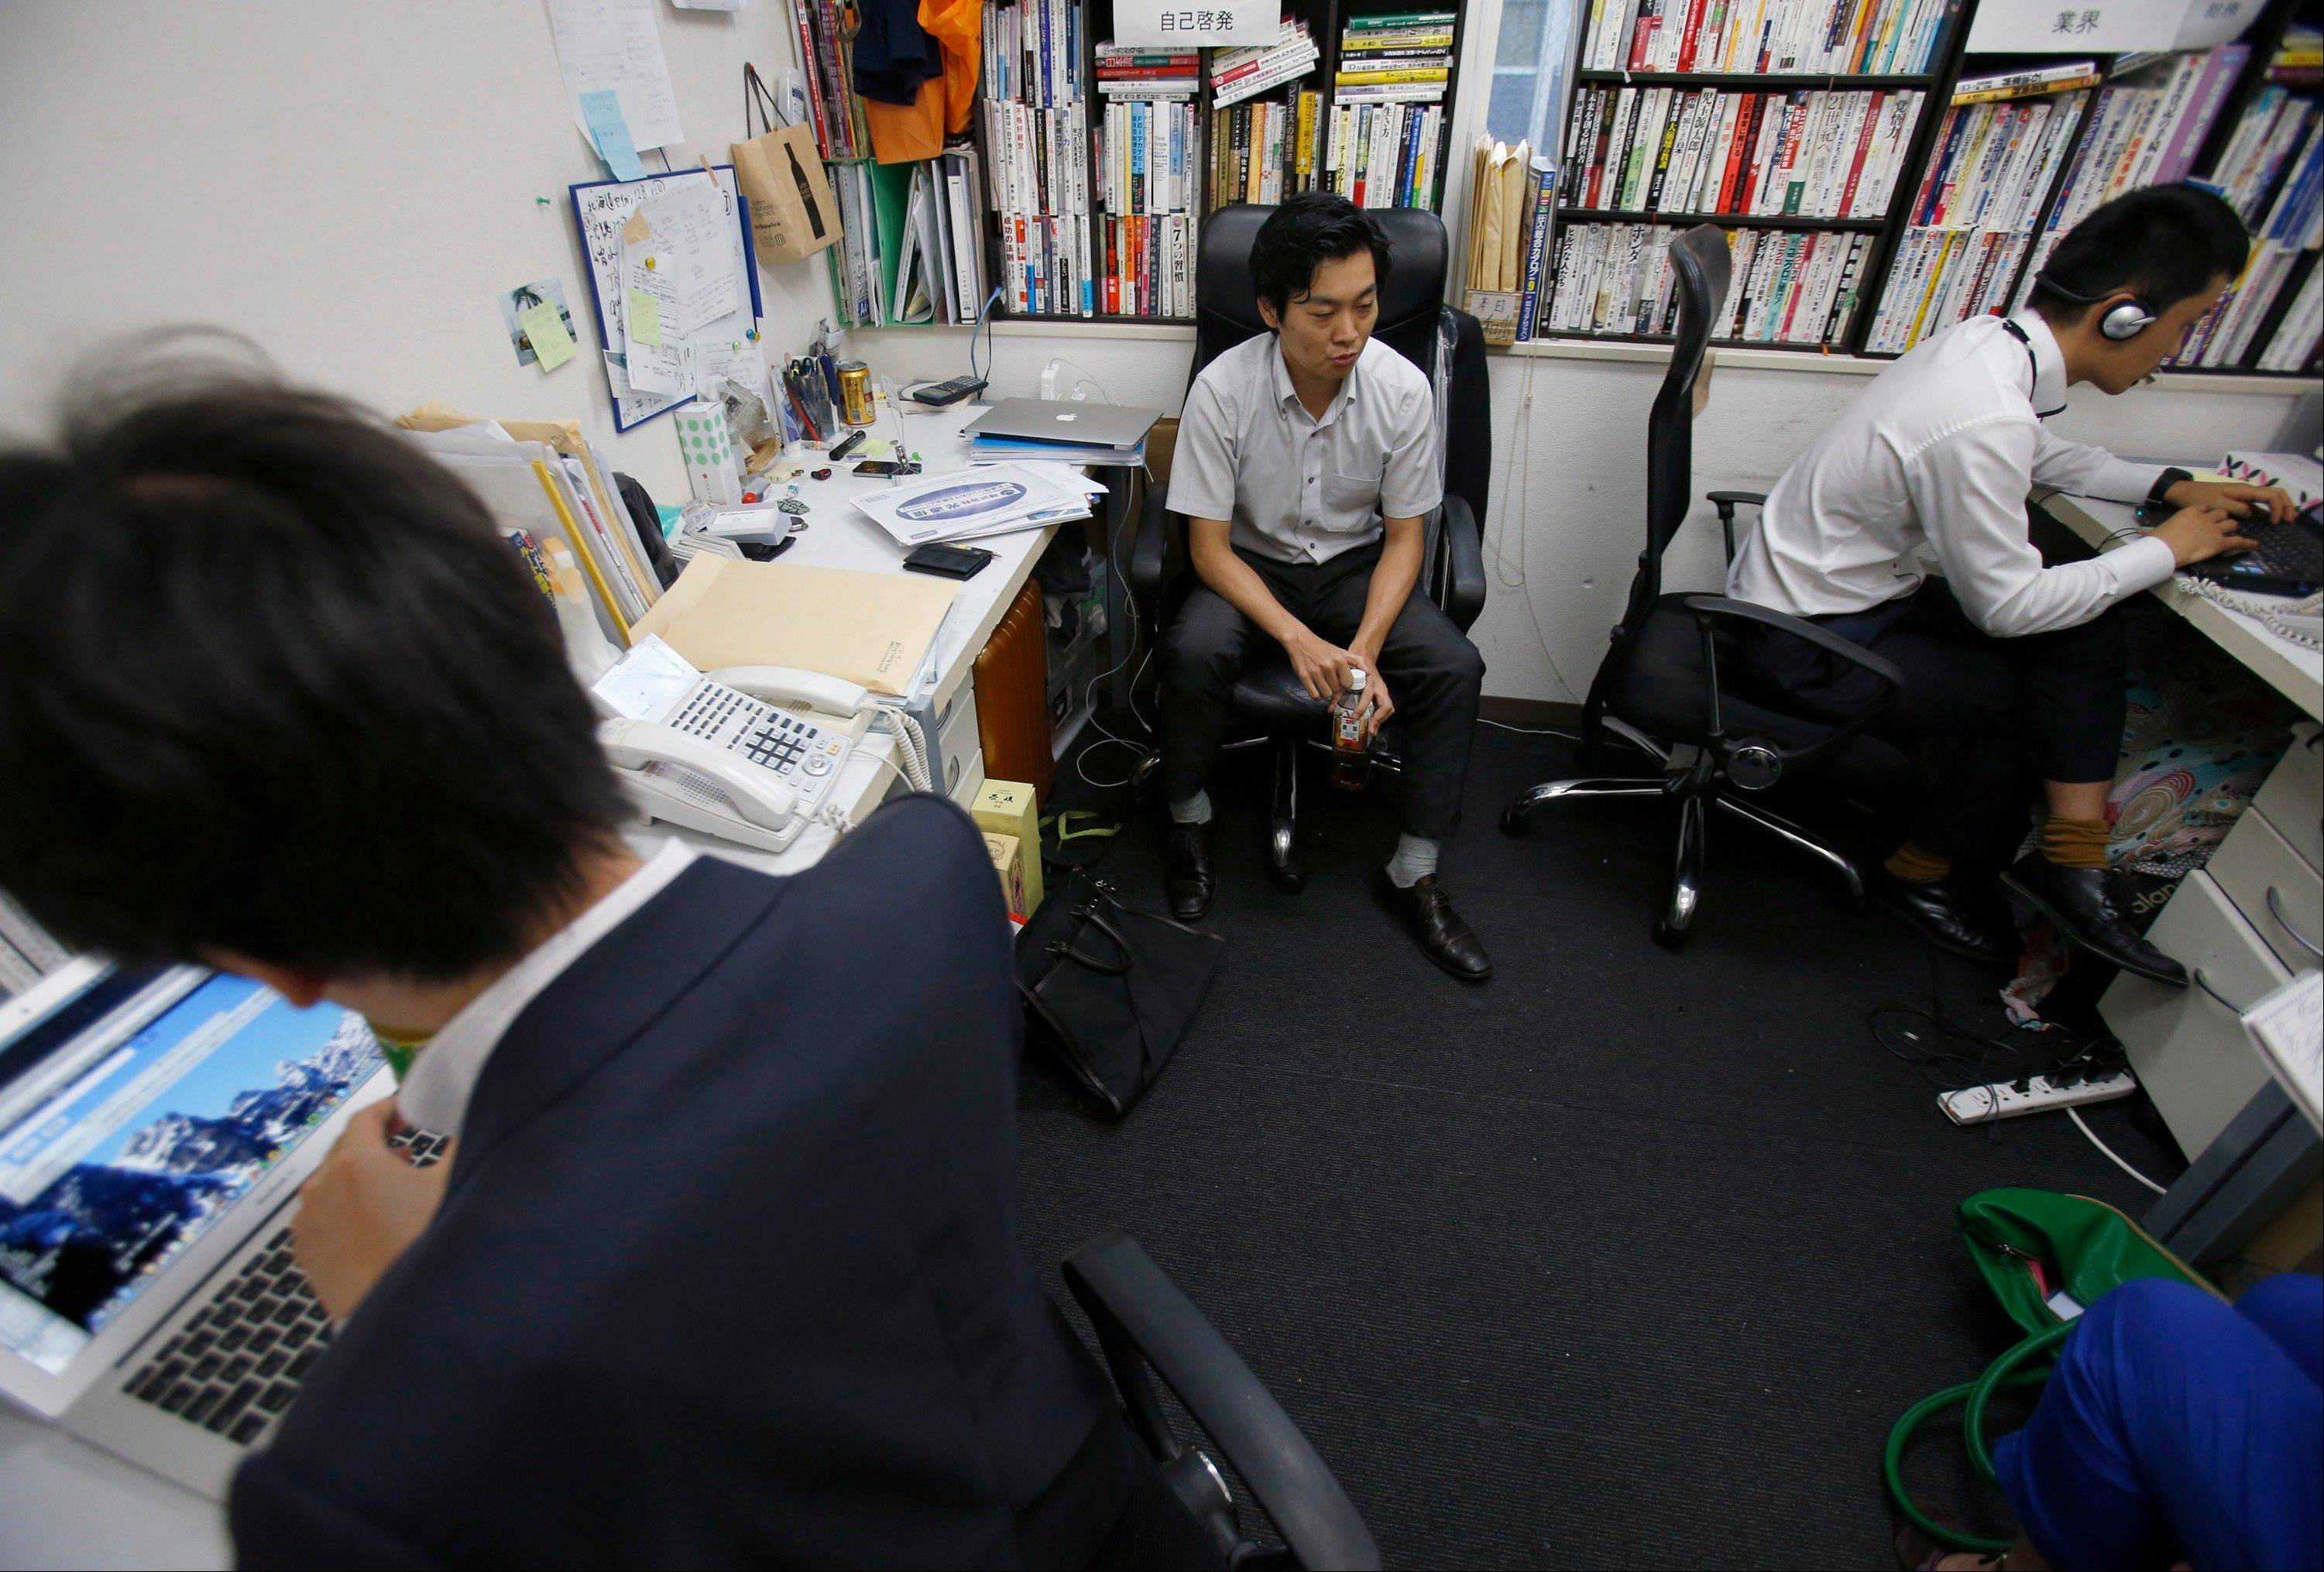 Terra Motors Corp. employee Shimpei Kato, center, speaks during an interview at its headquarters at Tokyo's Shibuya district. Terra is a little know venture that pays far less but is out to conquer the world with its stylish electric scooters.